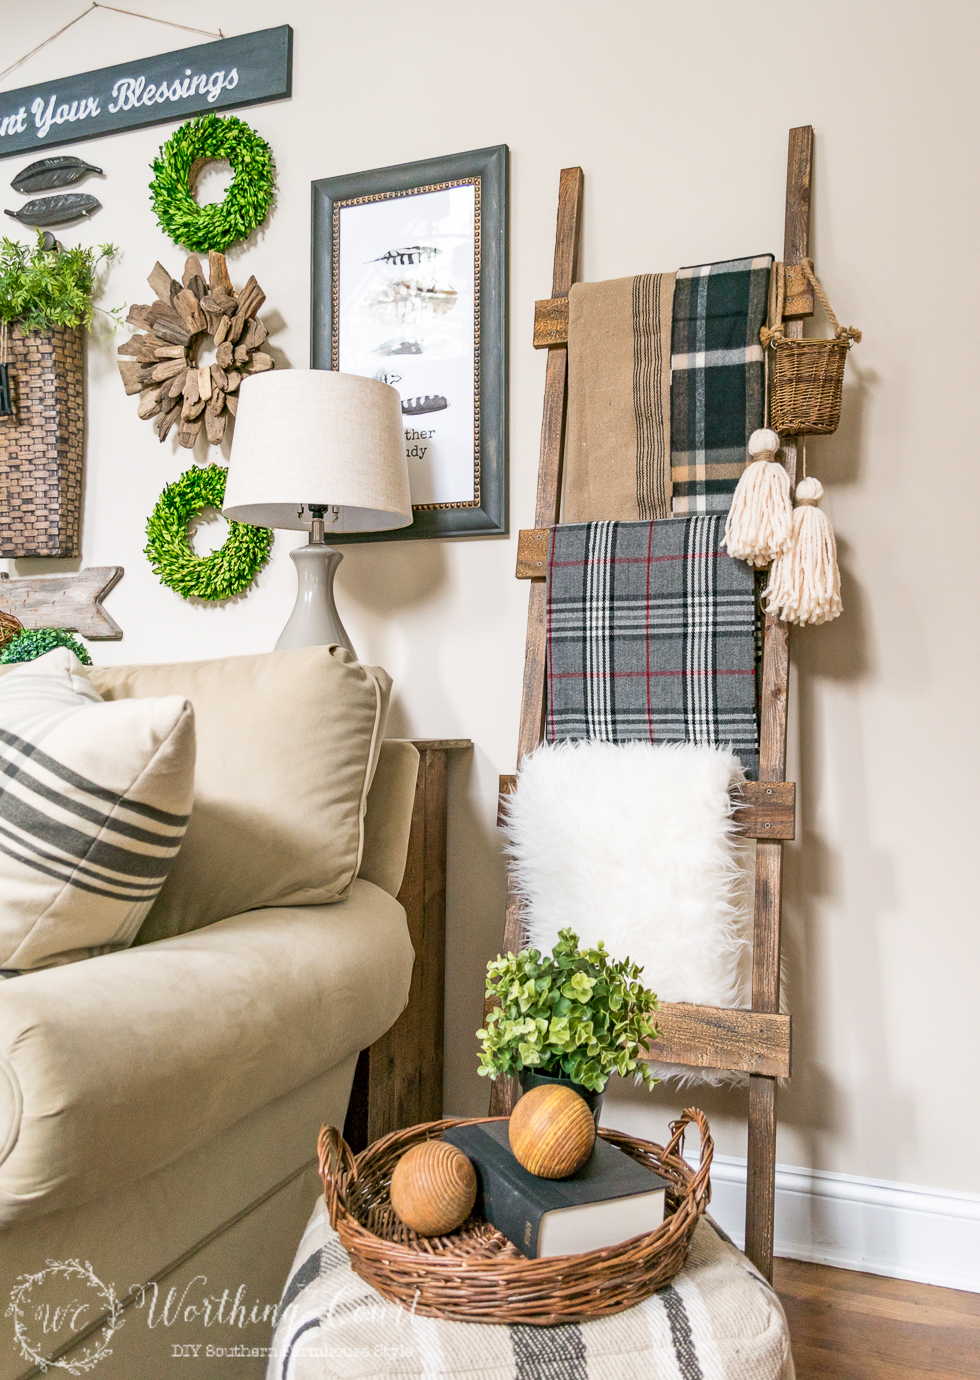 50 Farmhouse DIY Projects To Upgrade Your Home on a Budget - The ...